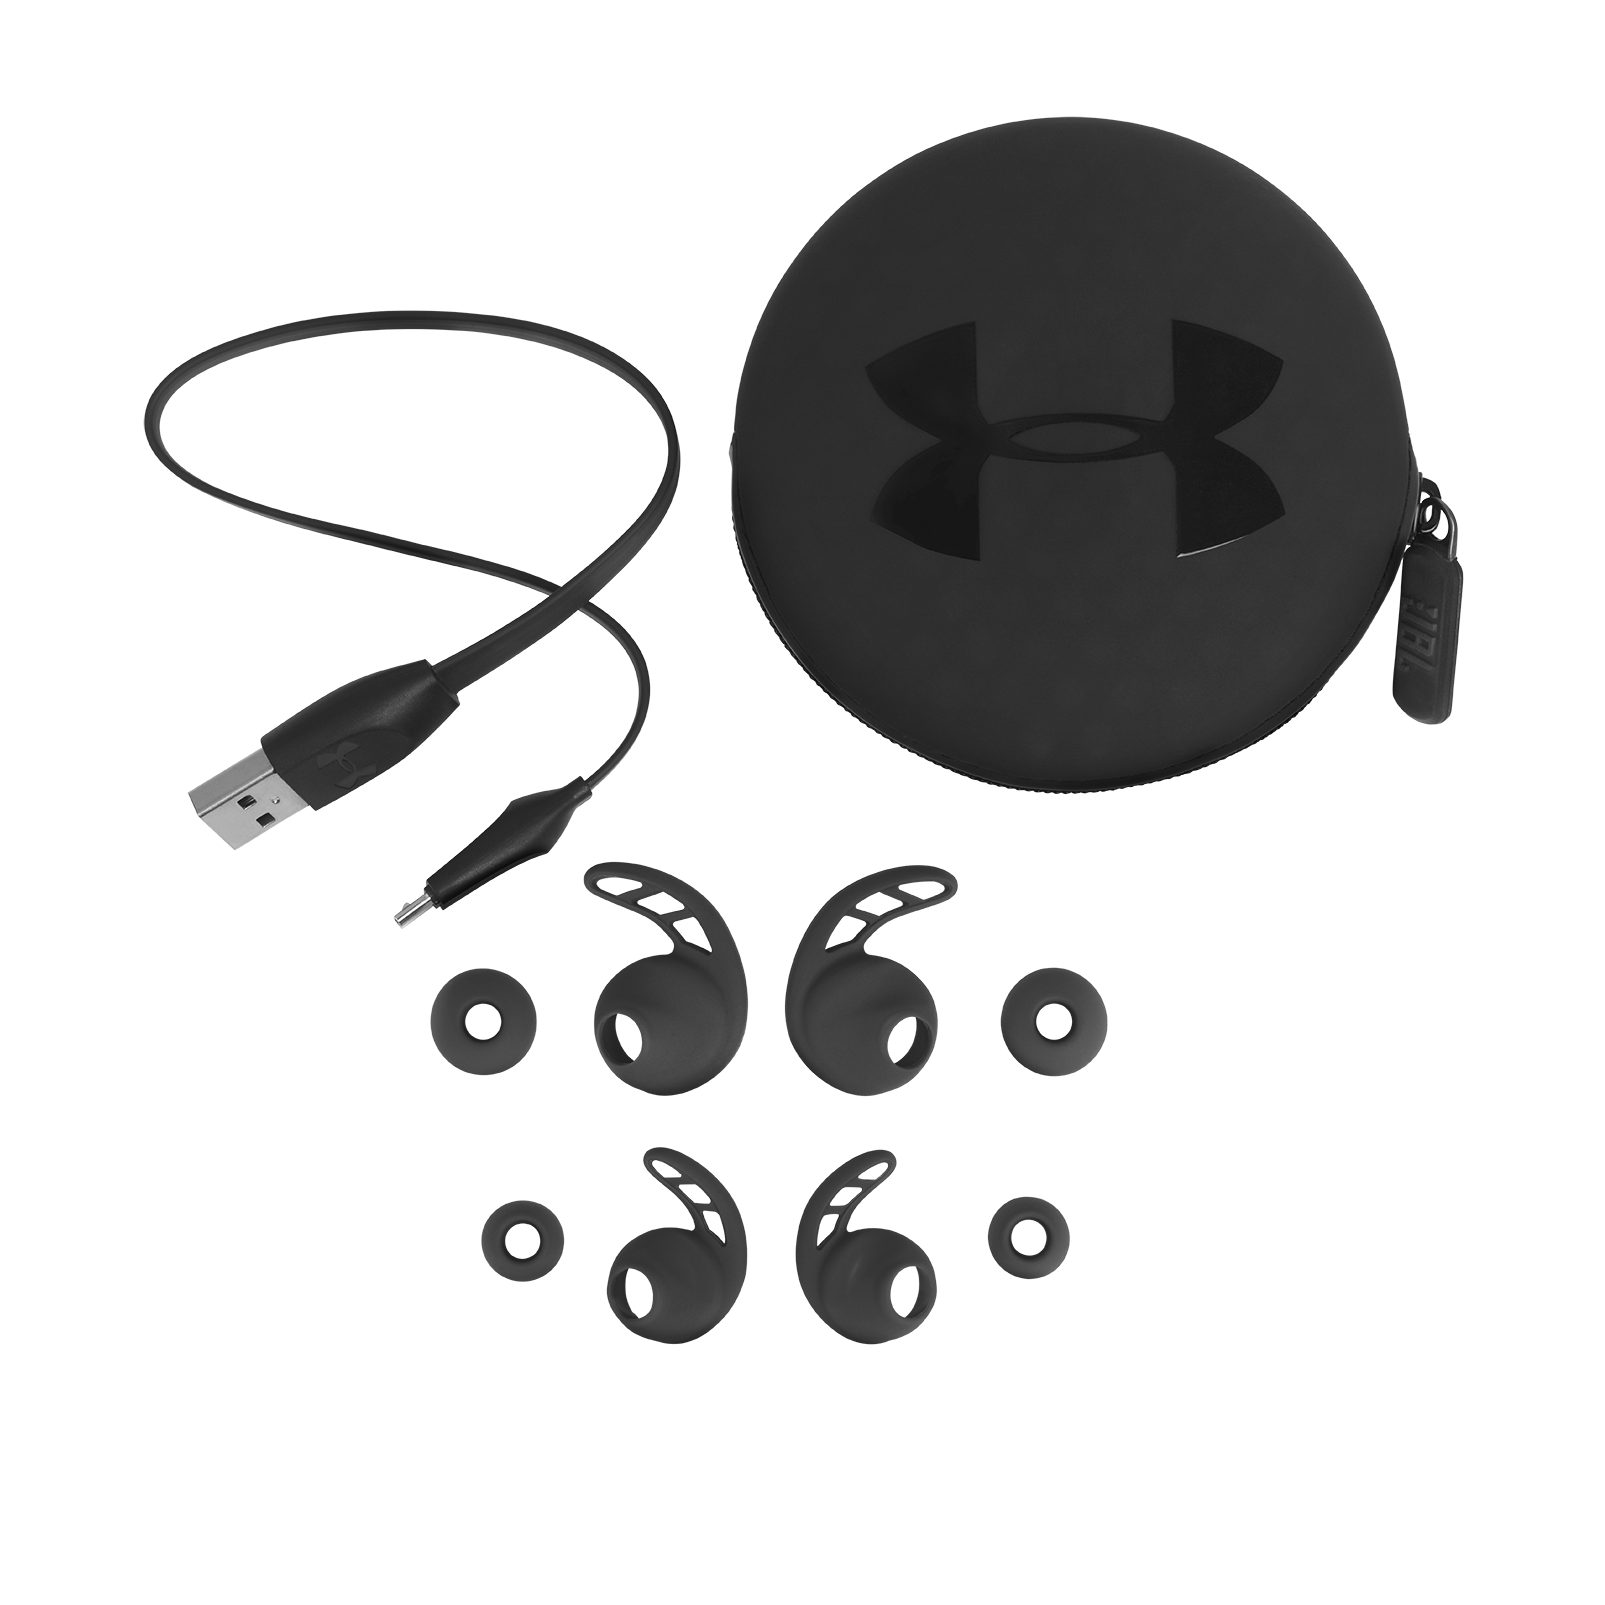 UA Sport Wireless PIVOT - Black - Secure-fitting wireless sport earphones with JBL technology and sound - Detailshot 5